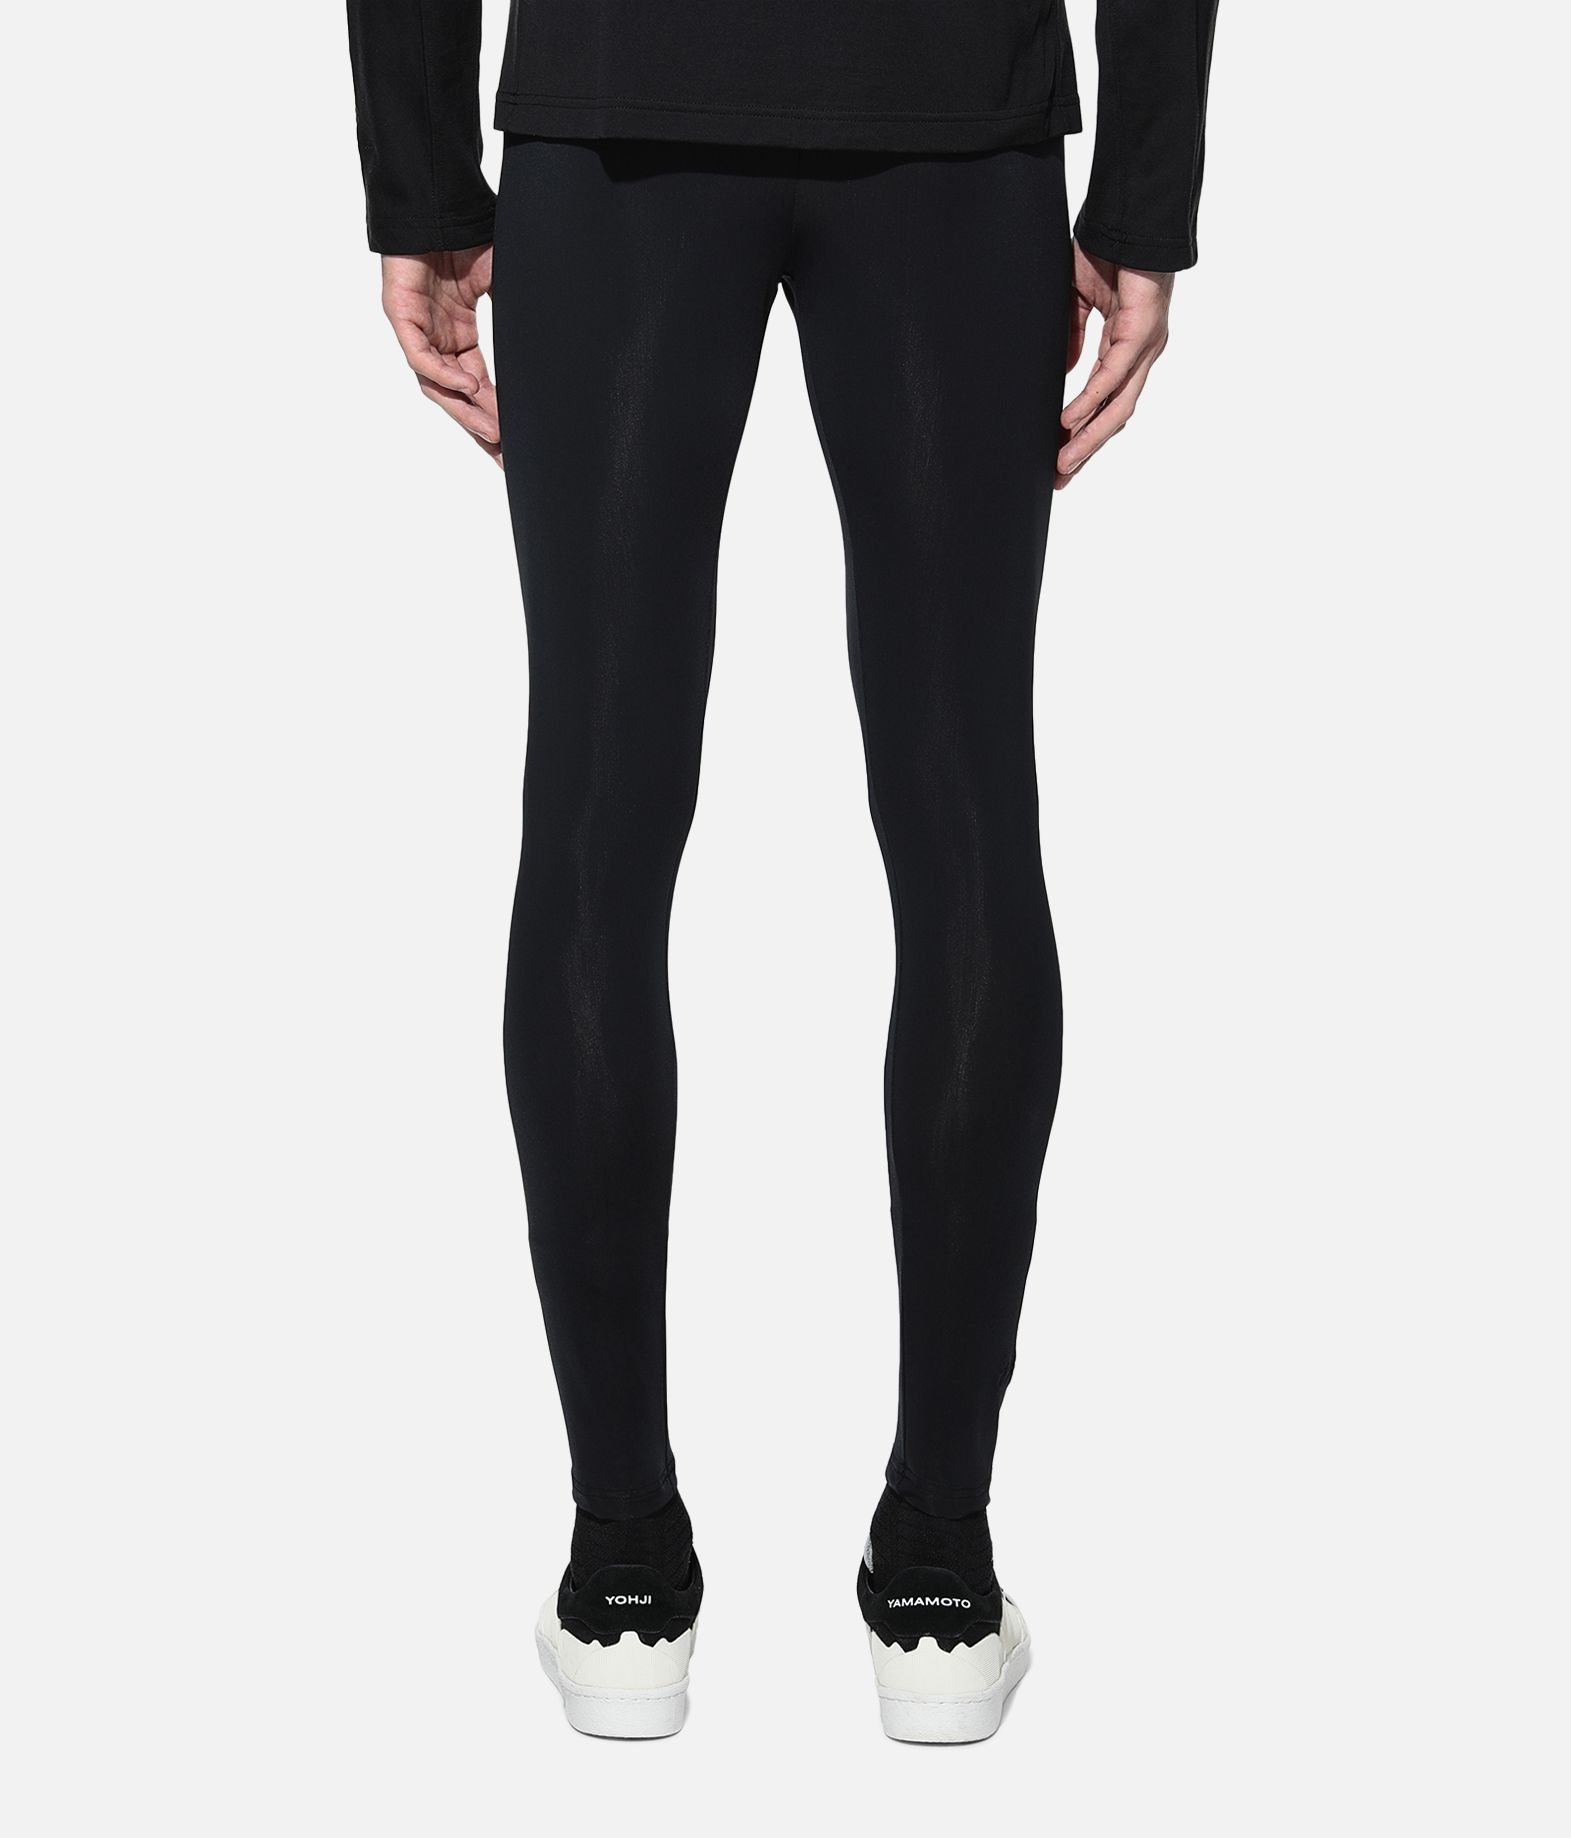 Y-3 Y-3 New Classic Tights Leggings Herren d